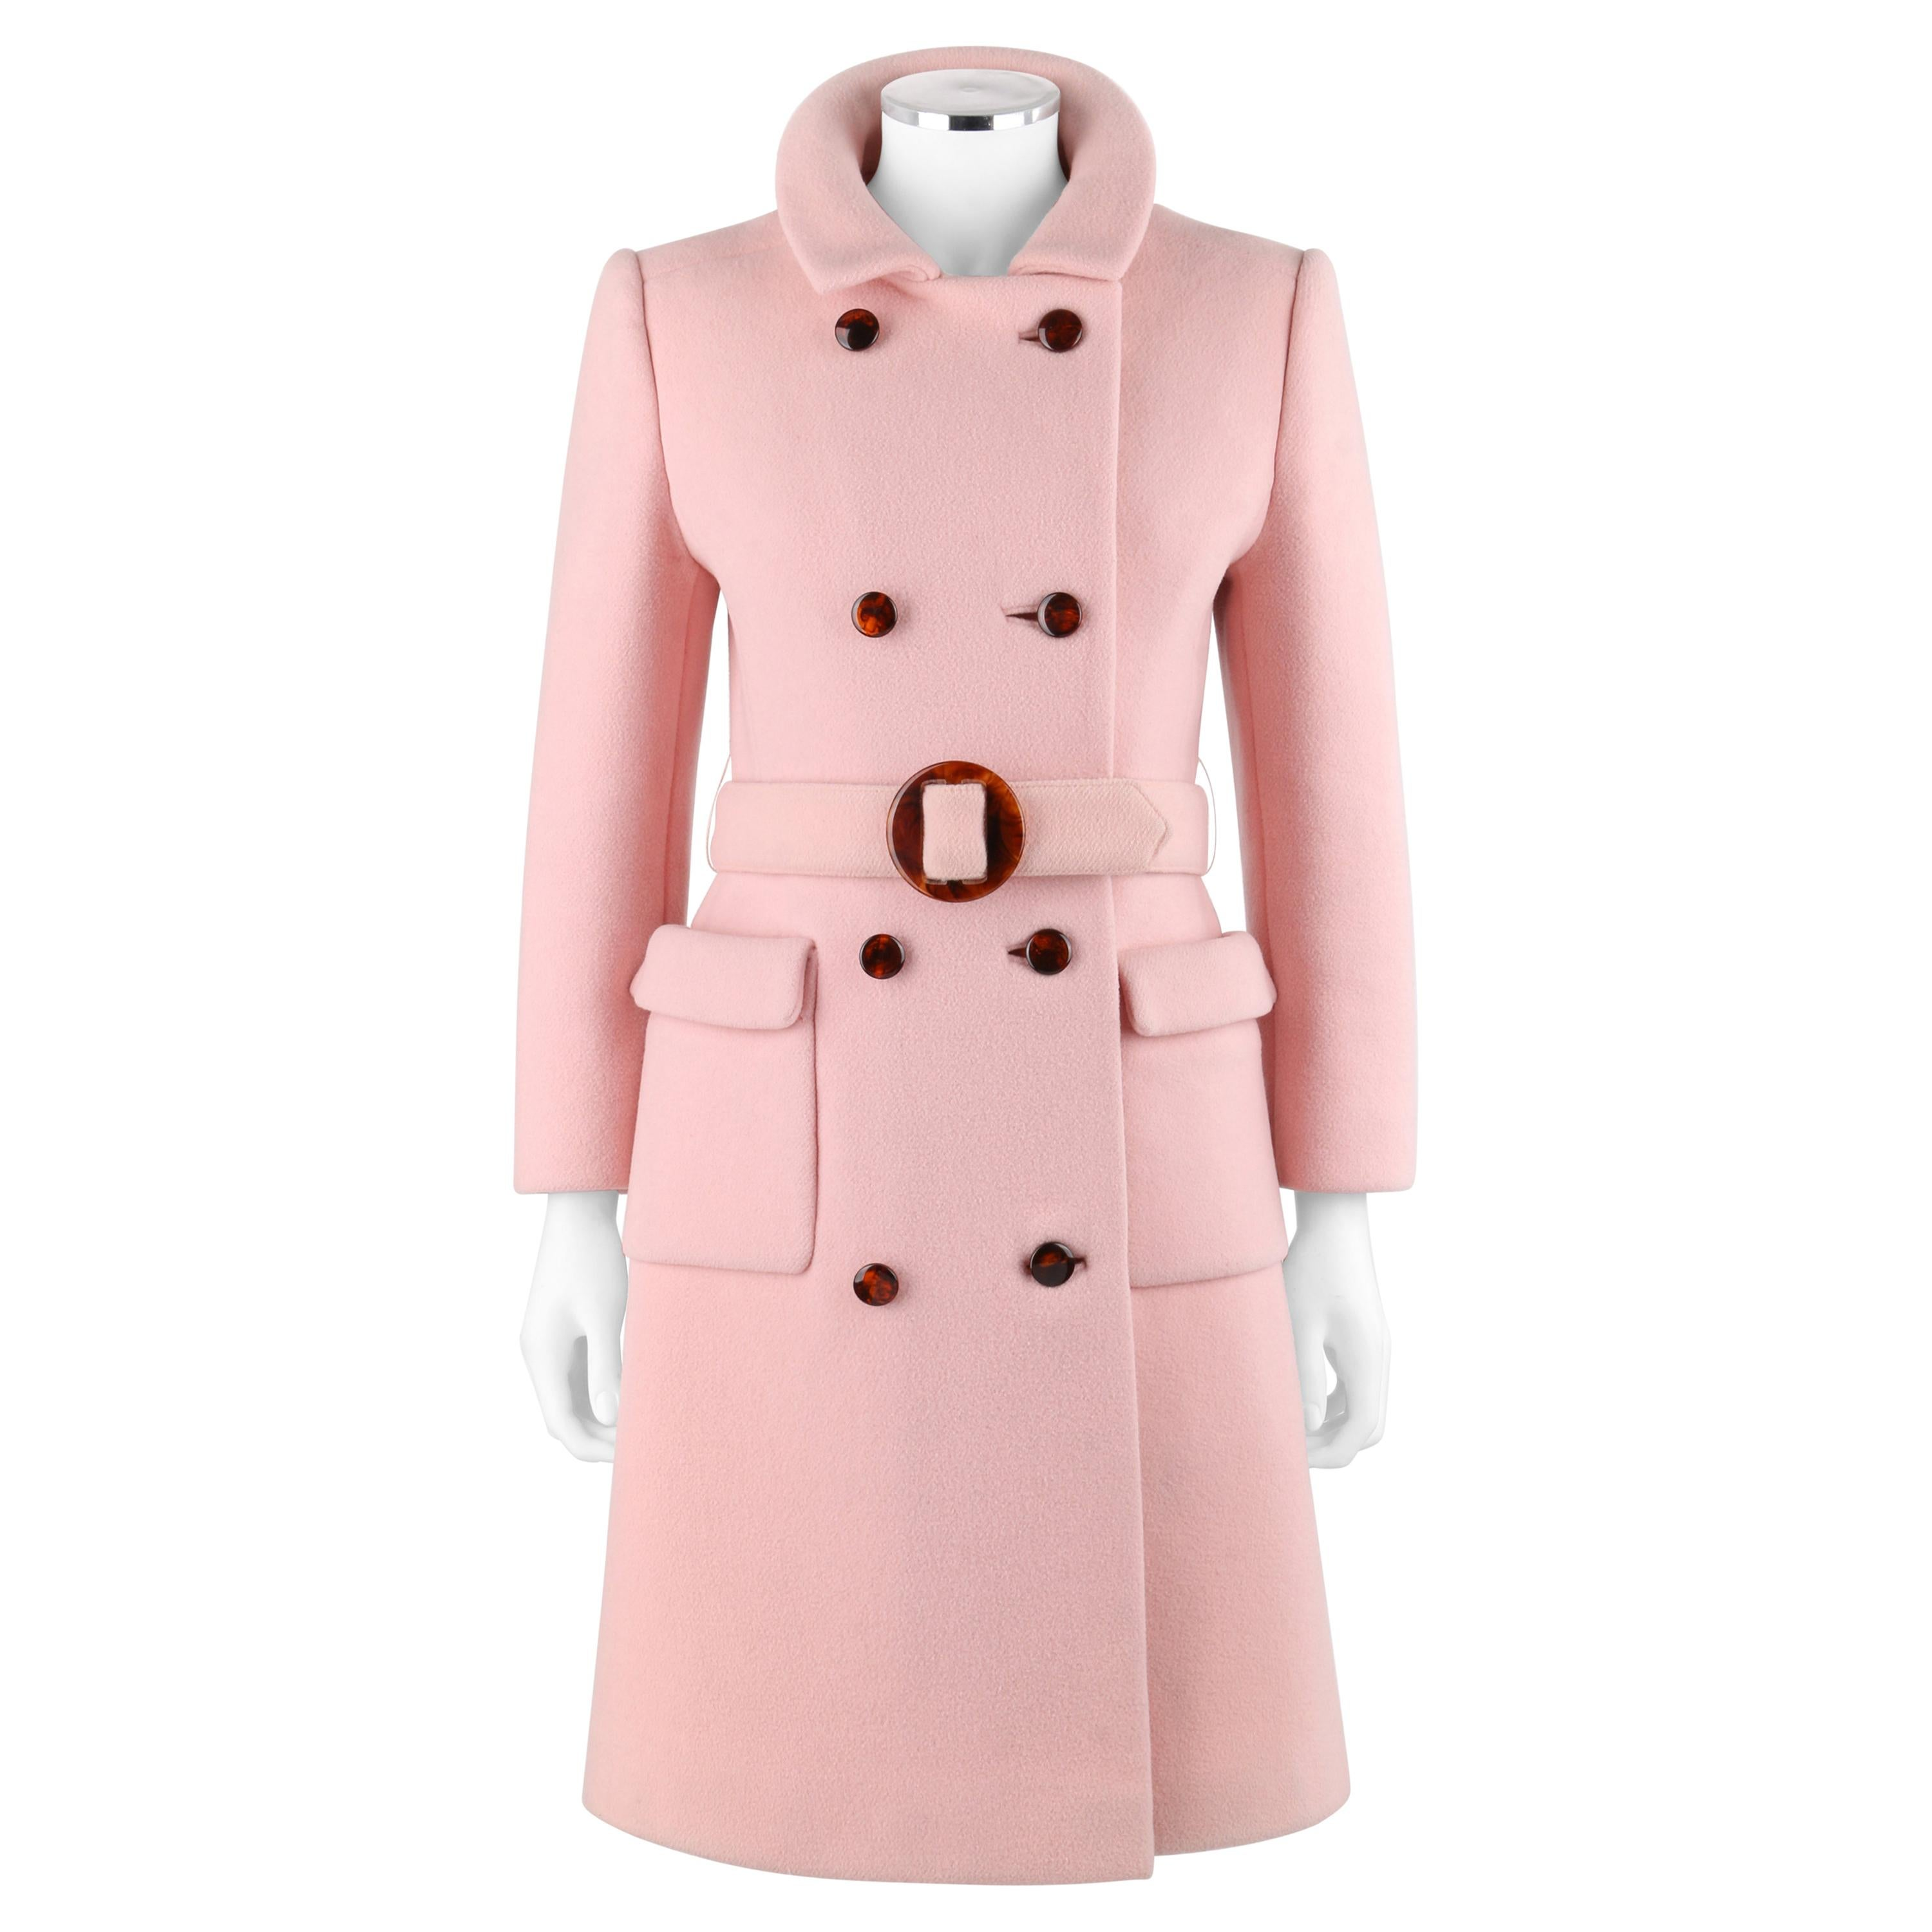 CALVIN KLEIN c.1960's Mod Soft Pink Wool Tortoise Shell Belted Top Coat